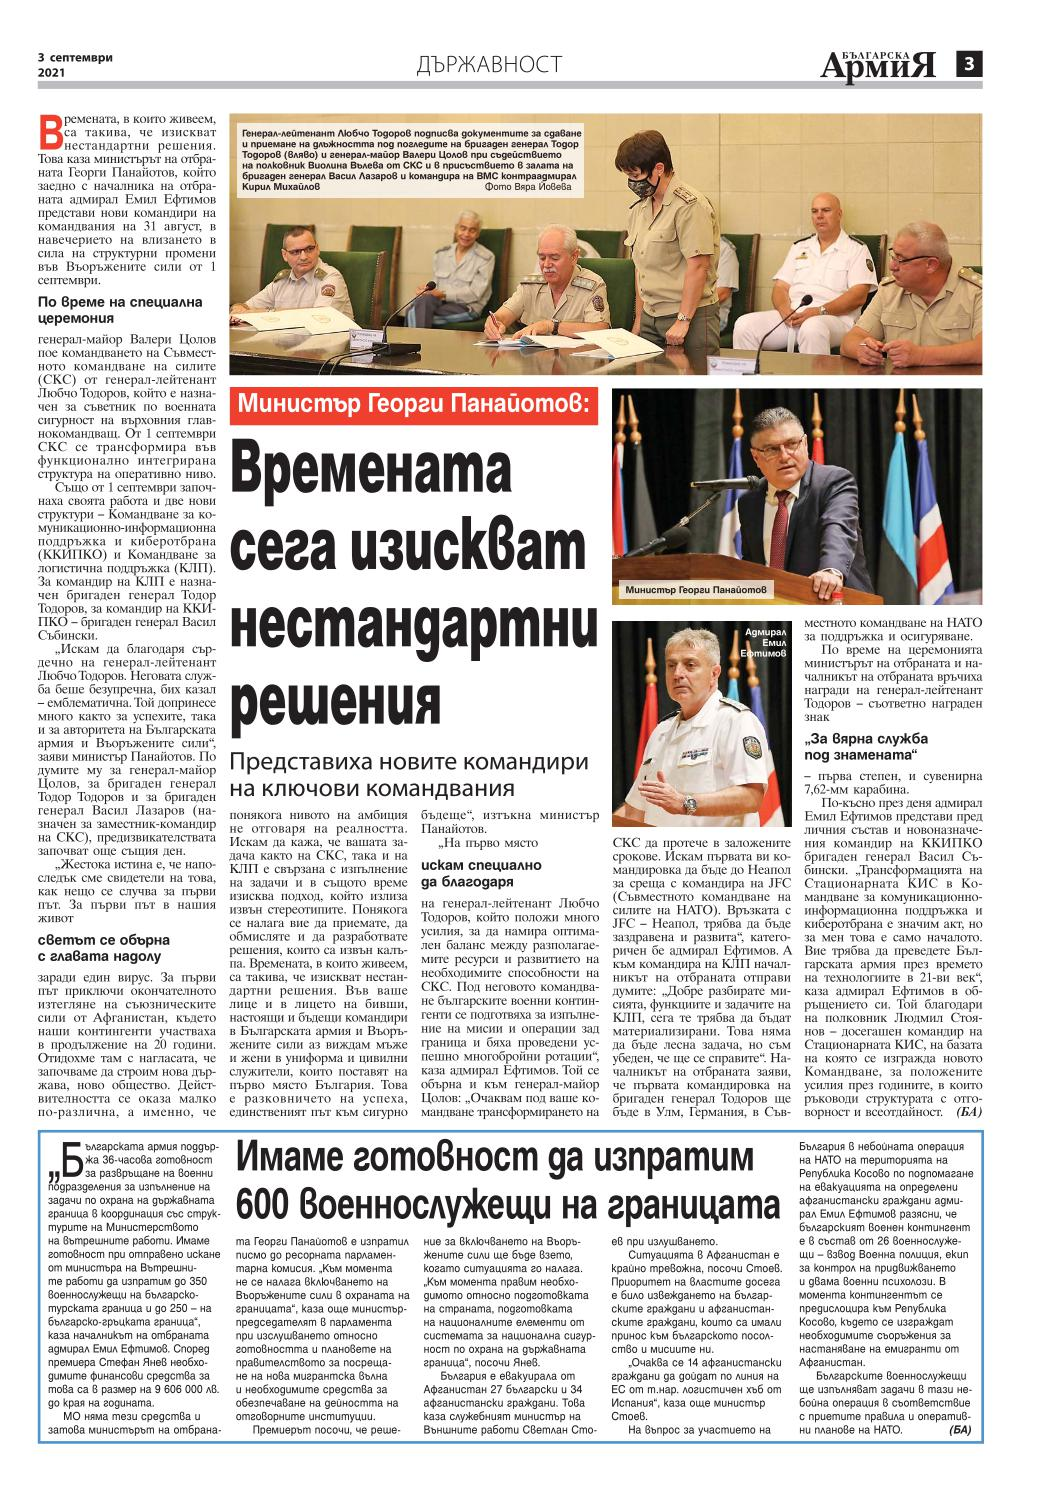 https://armymedia.bg/wp-content/uploads/2021/09/03.page1_.jpg